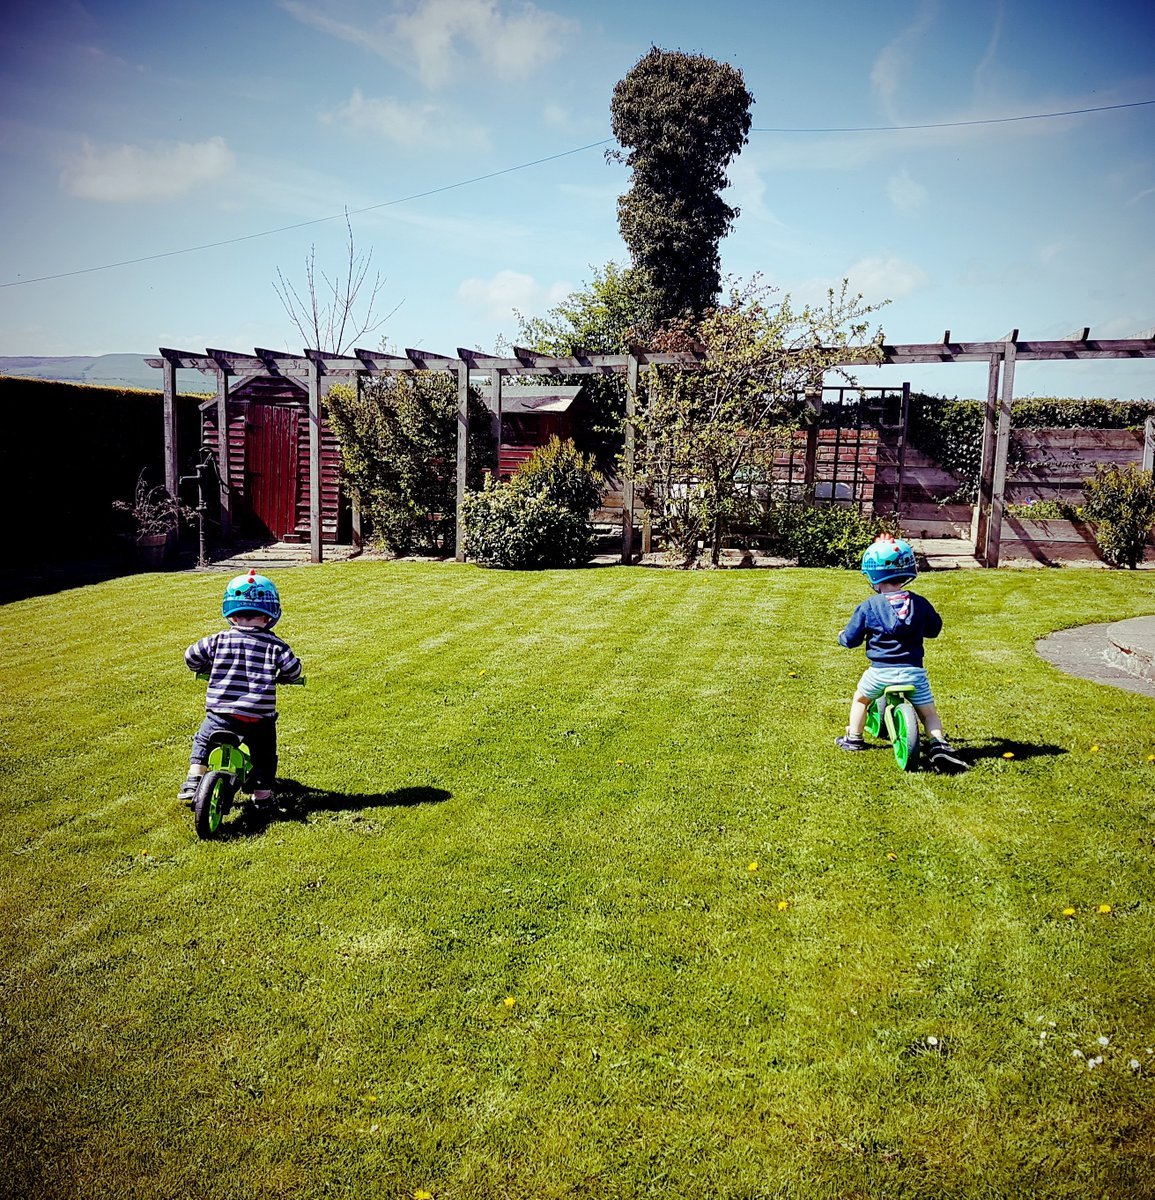 Choosing your child's first bike http://mummyfever.co.uk/choosing-your-childs-first-bike/… #balancebike #bikes #firstbike #outdoorplay pic.twitter.com/txpY2PeFEi